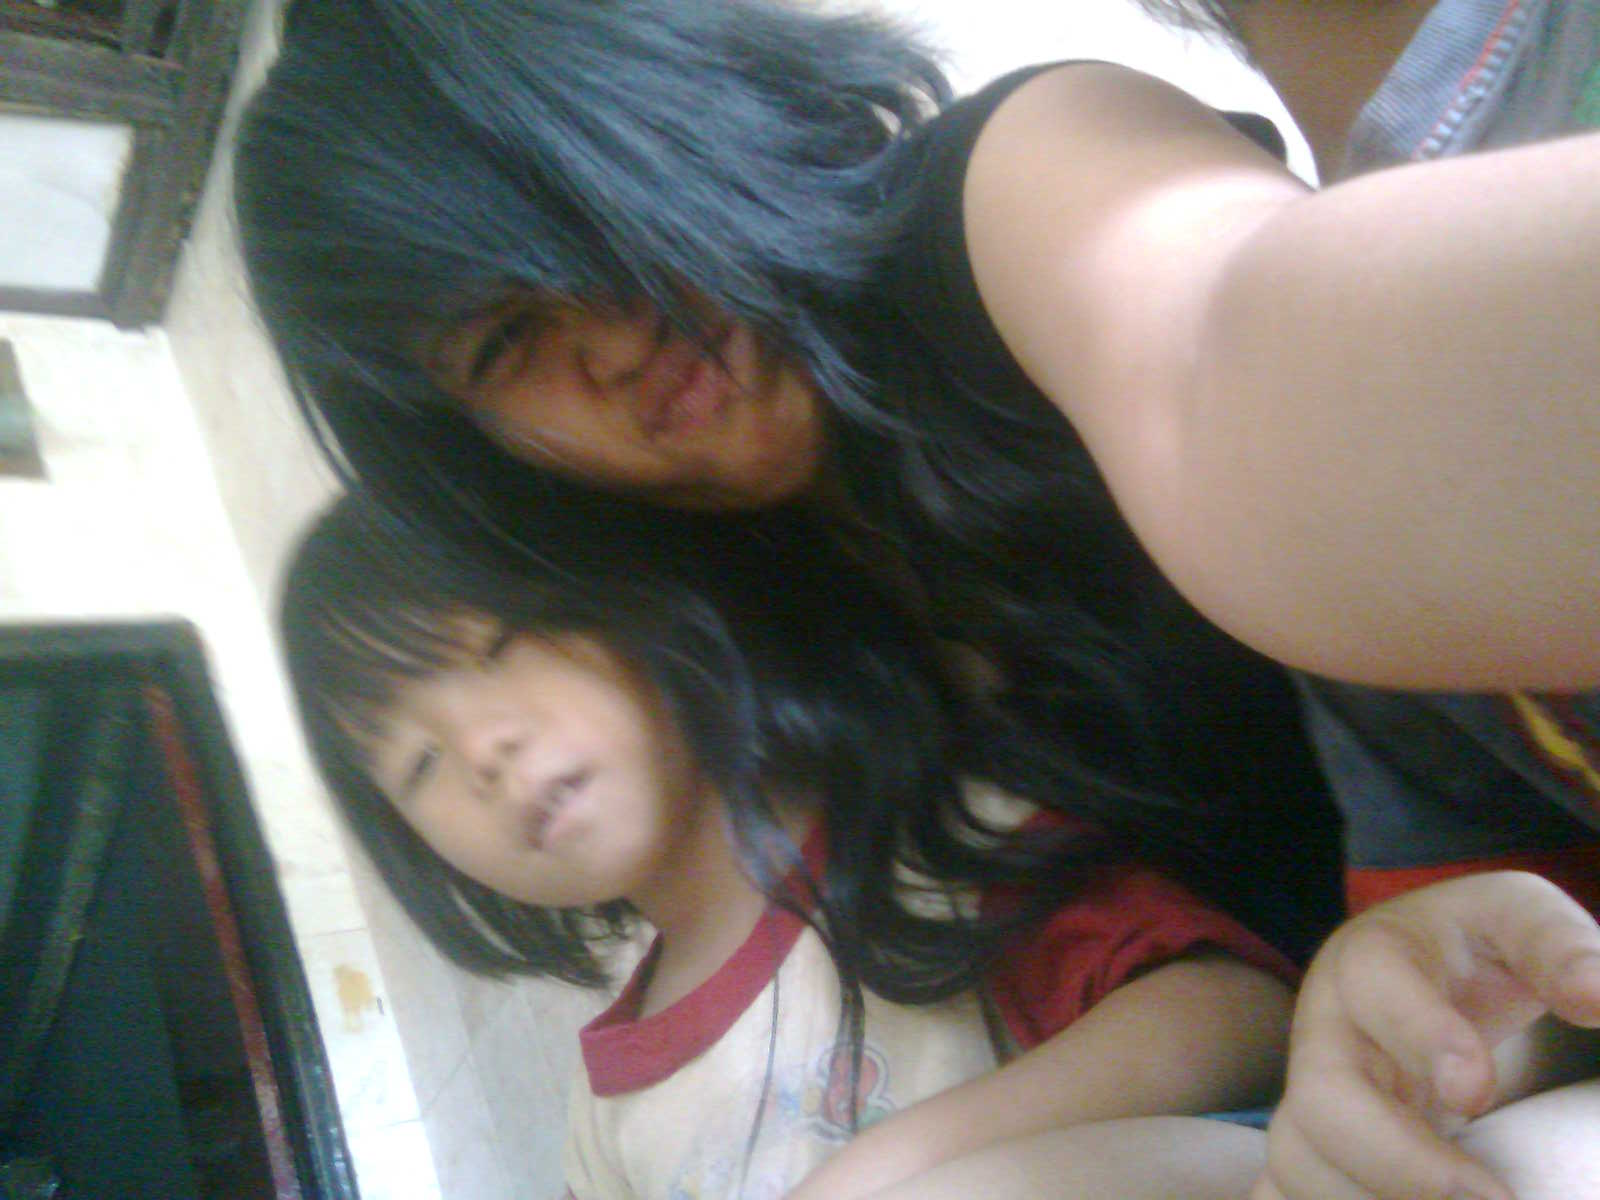 adHe aIrashii, bLogs